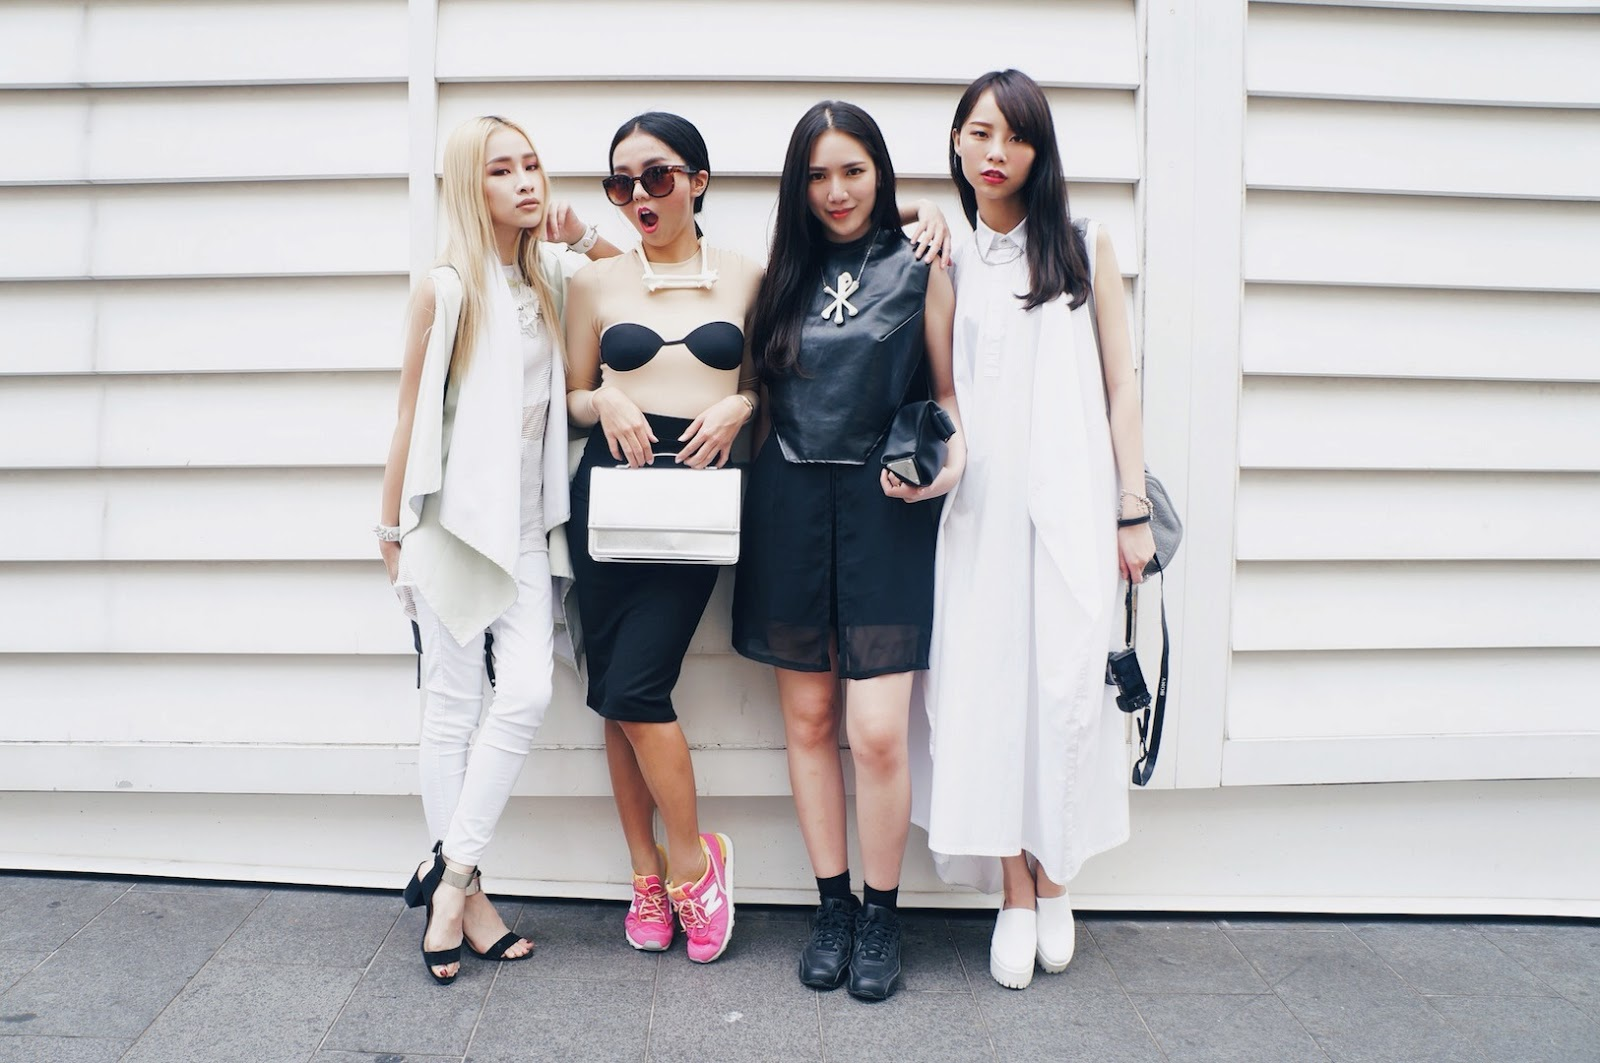 What to wear to a fashion show casting